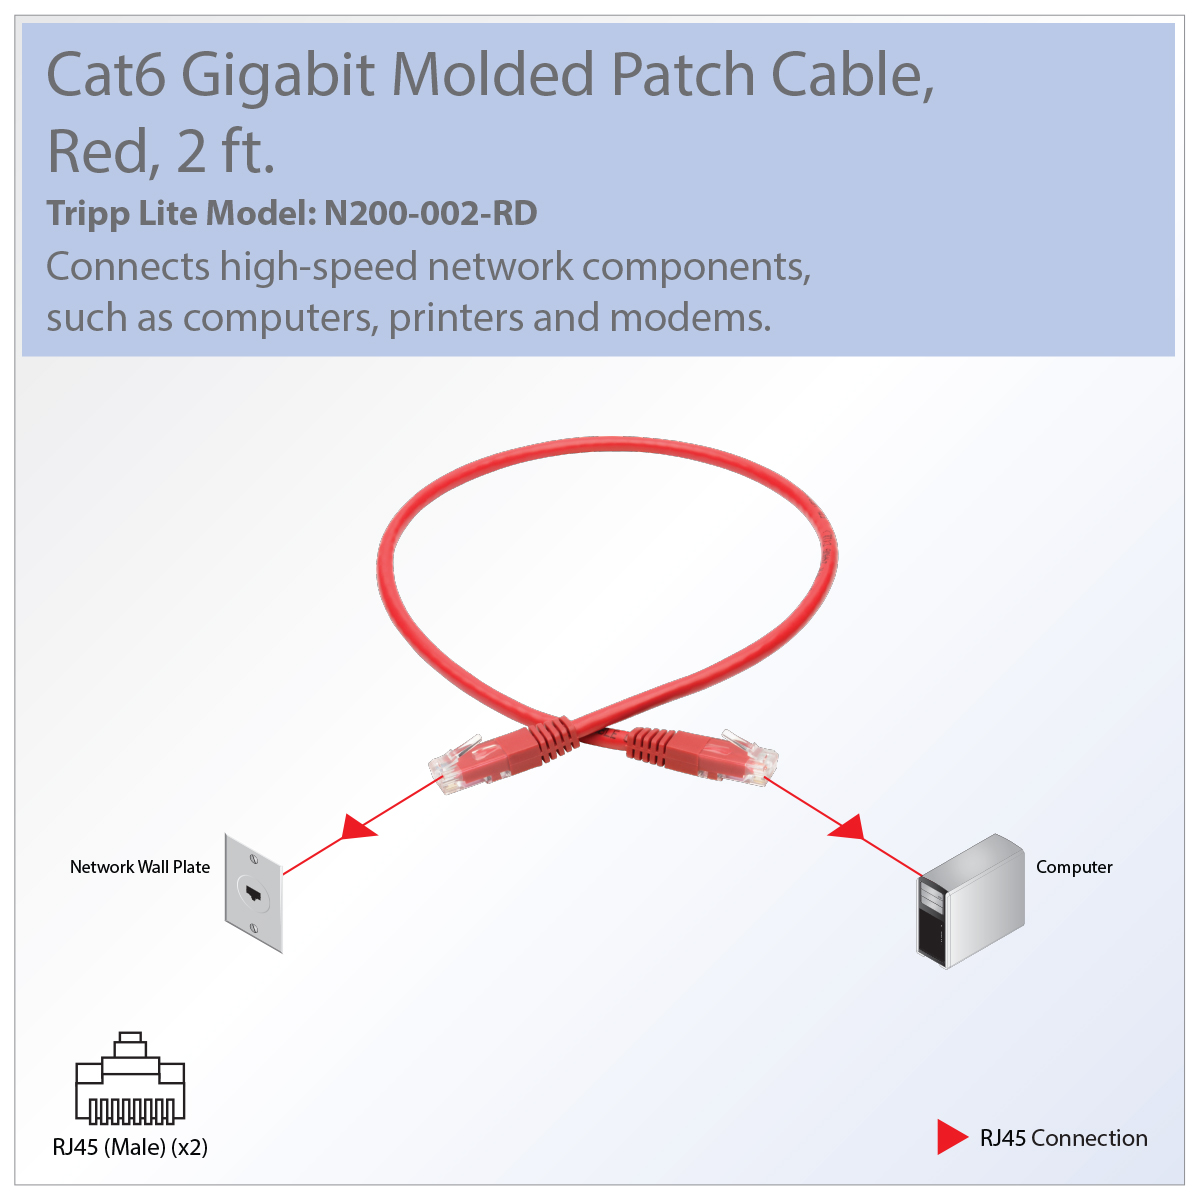 Tripp Lite Cat6 Cat5e Gigabit Molded Patch Cable Rj45 M 550mhz Red Wiring Diagram How To Wire Your House With Or Great For Connecting Components In Bandwidth Heavy Home Office Networks